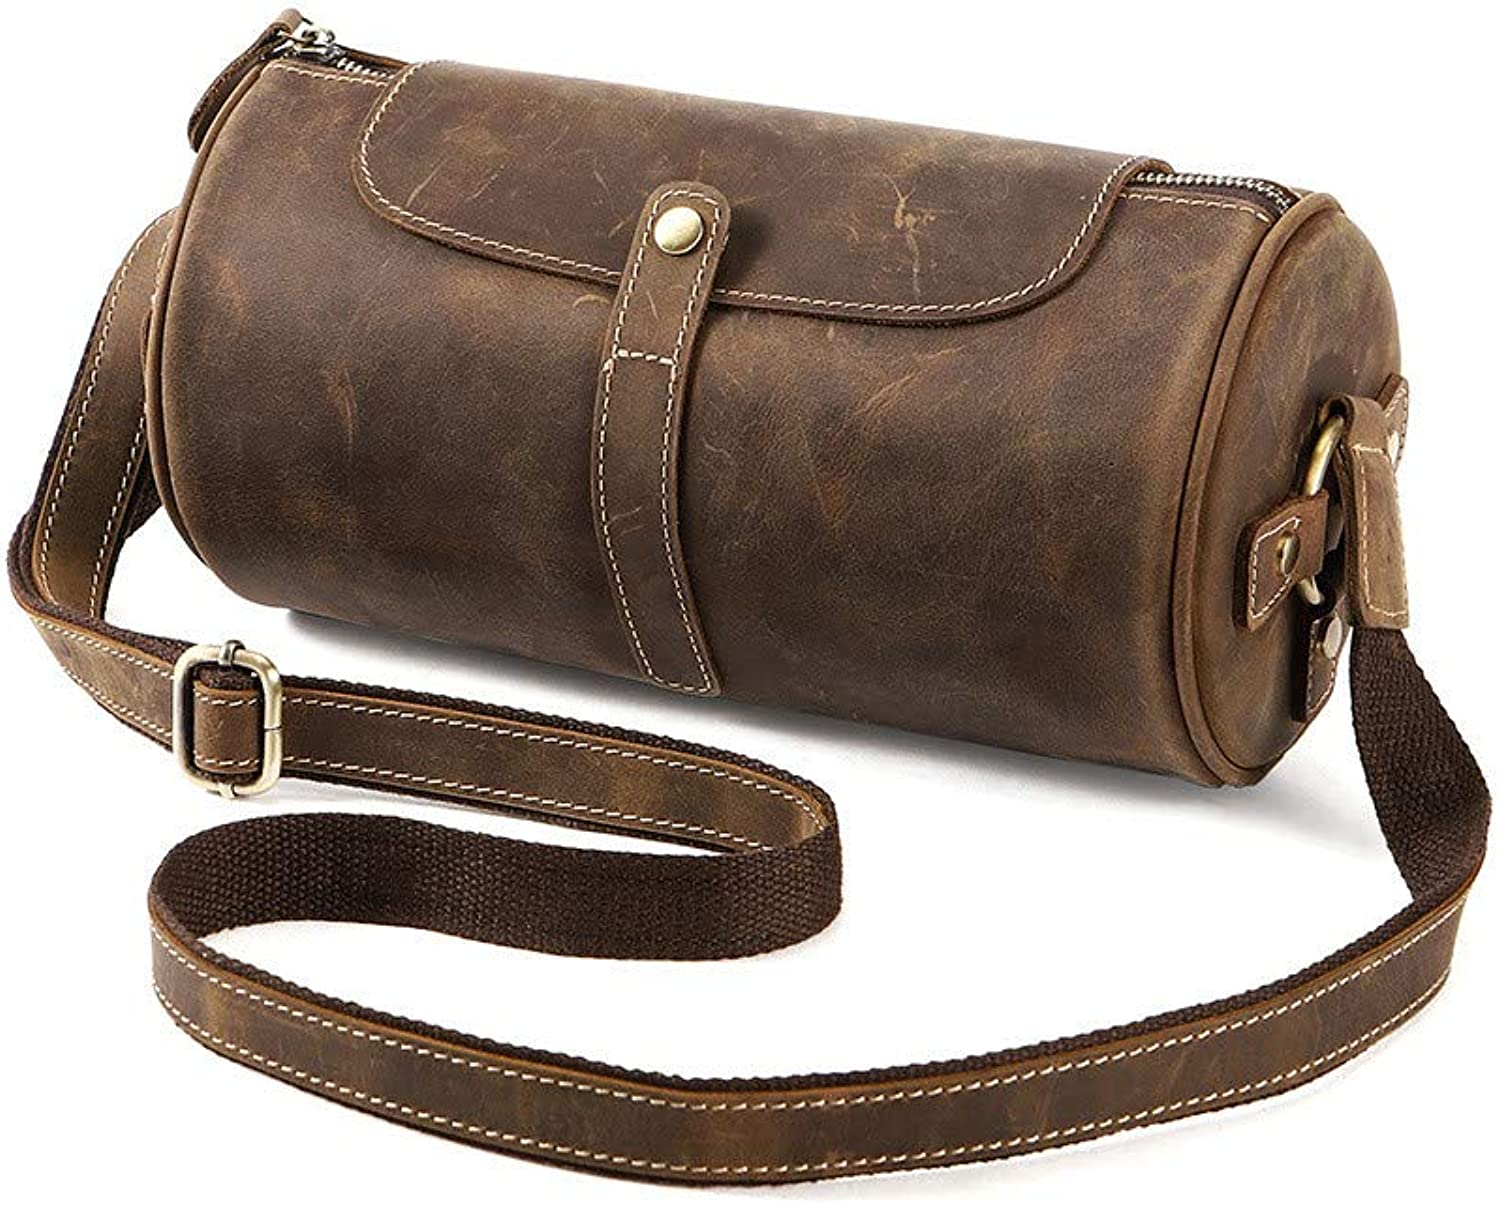 Sturdy New Men's Vintage Fashion Casual Leather Business Tote Crossbody Handbag Large Capacity (color   Brown)